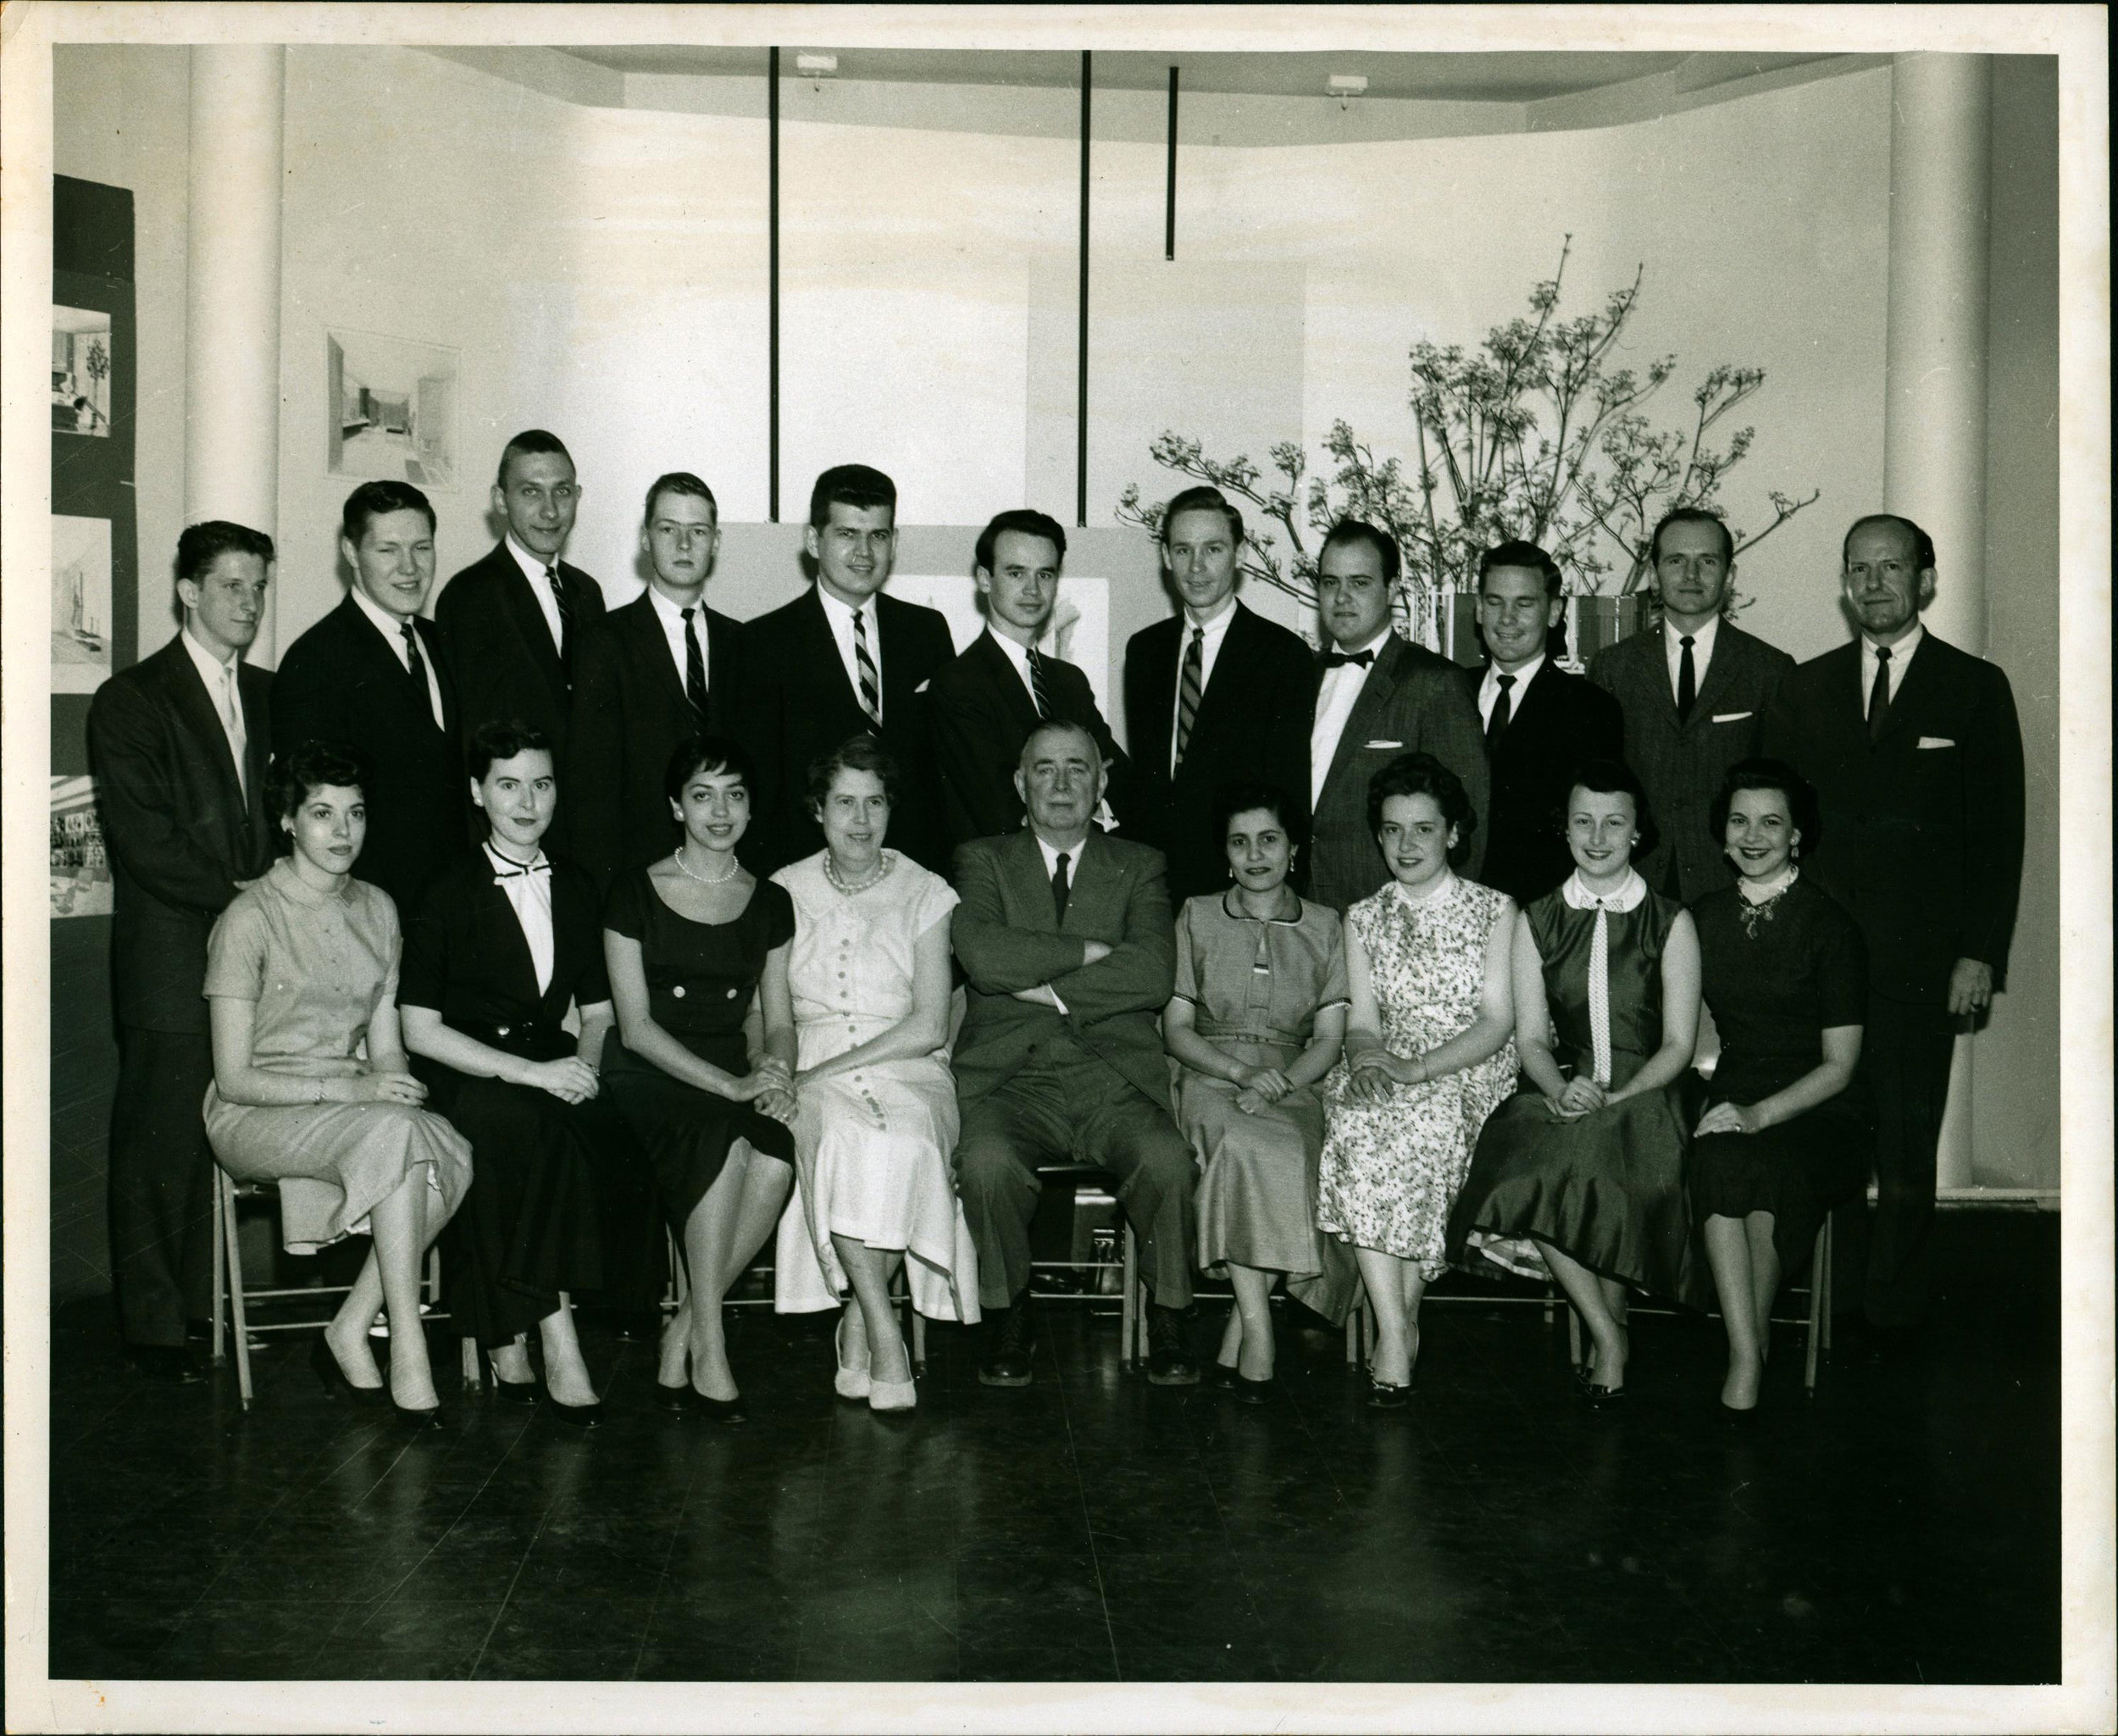 """NYSID Class of 1956: 1956 NYSID alumnus  Joseph Grusczak,  whose professional interior design collection is now housed in the  NYSID Archives , recalls how the school's year-end commencement exhibitions often garnered the attention of industry professsionals. """"Considerable interest at NYSID's exhibitions set in motion invitations to join design firms. It became clear how important exposure at such student exhibitions were. As a result, work flowed my way and never stopped in my half-century of designing. My hat is off to the New York School of Interior Design.""""   (Top row, far left: Joe Grusczak)"""